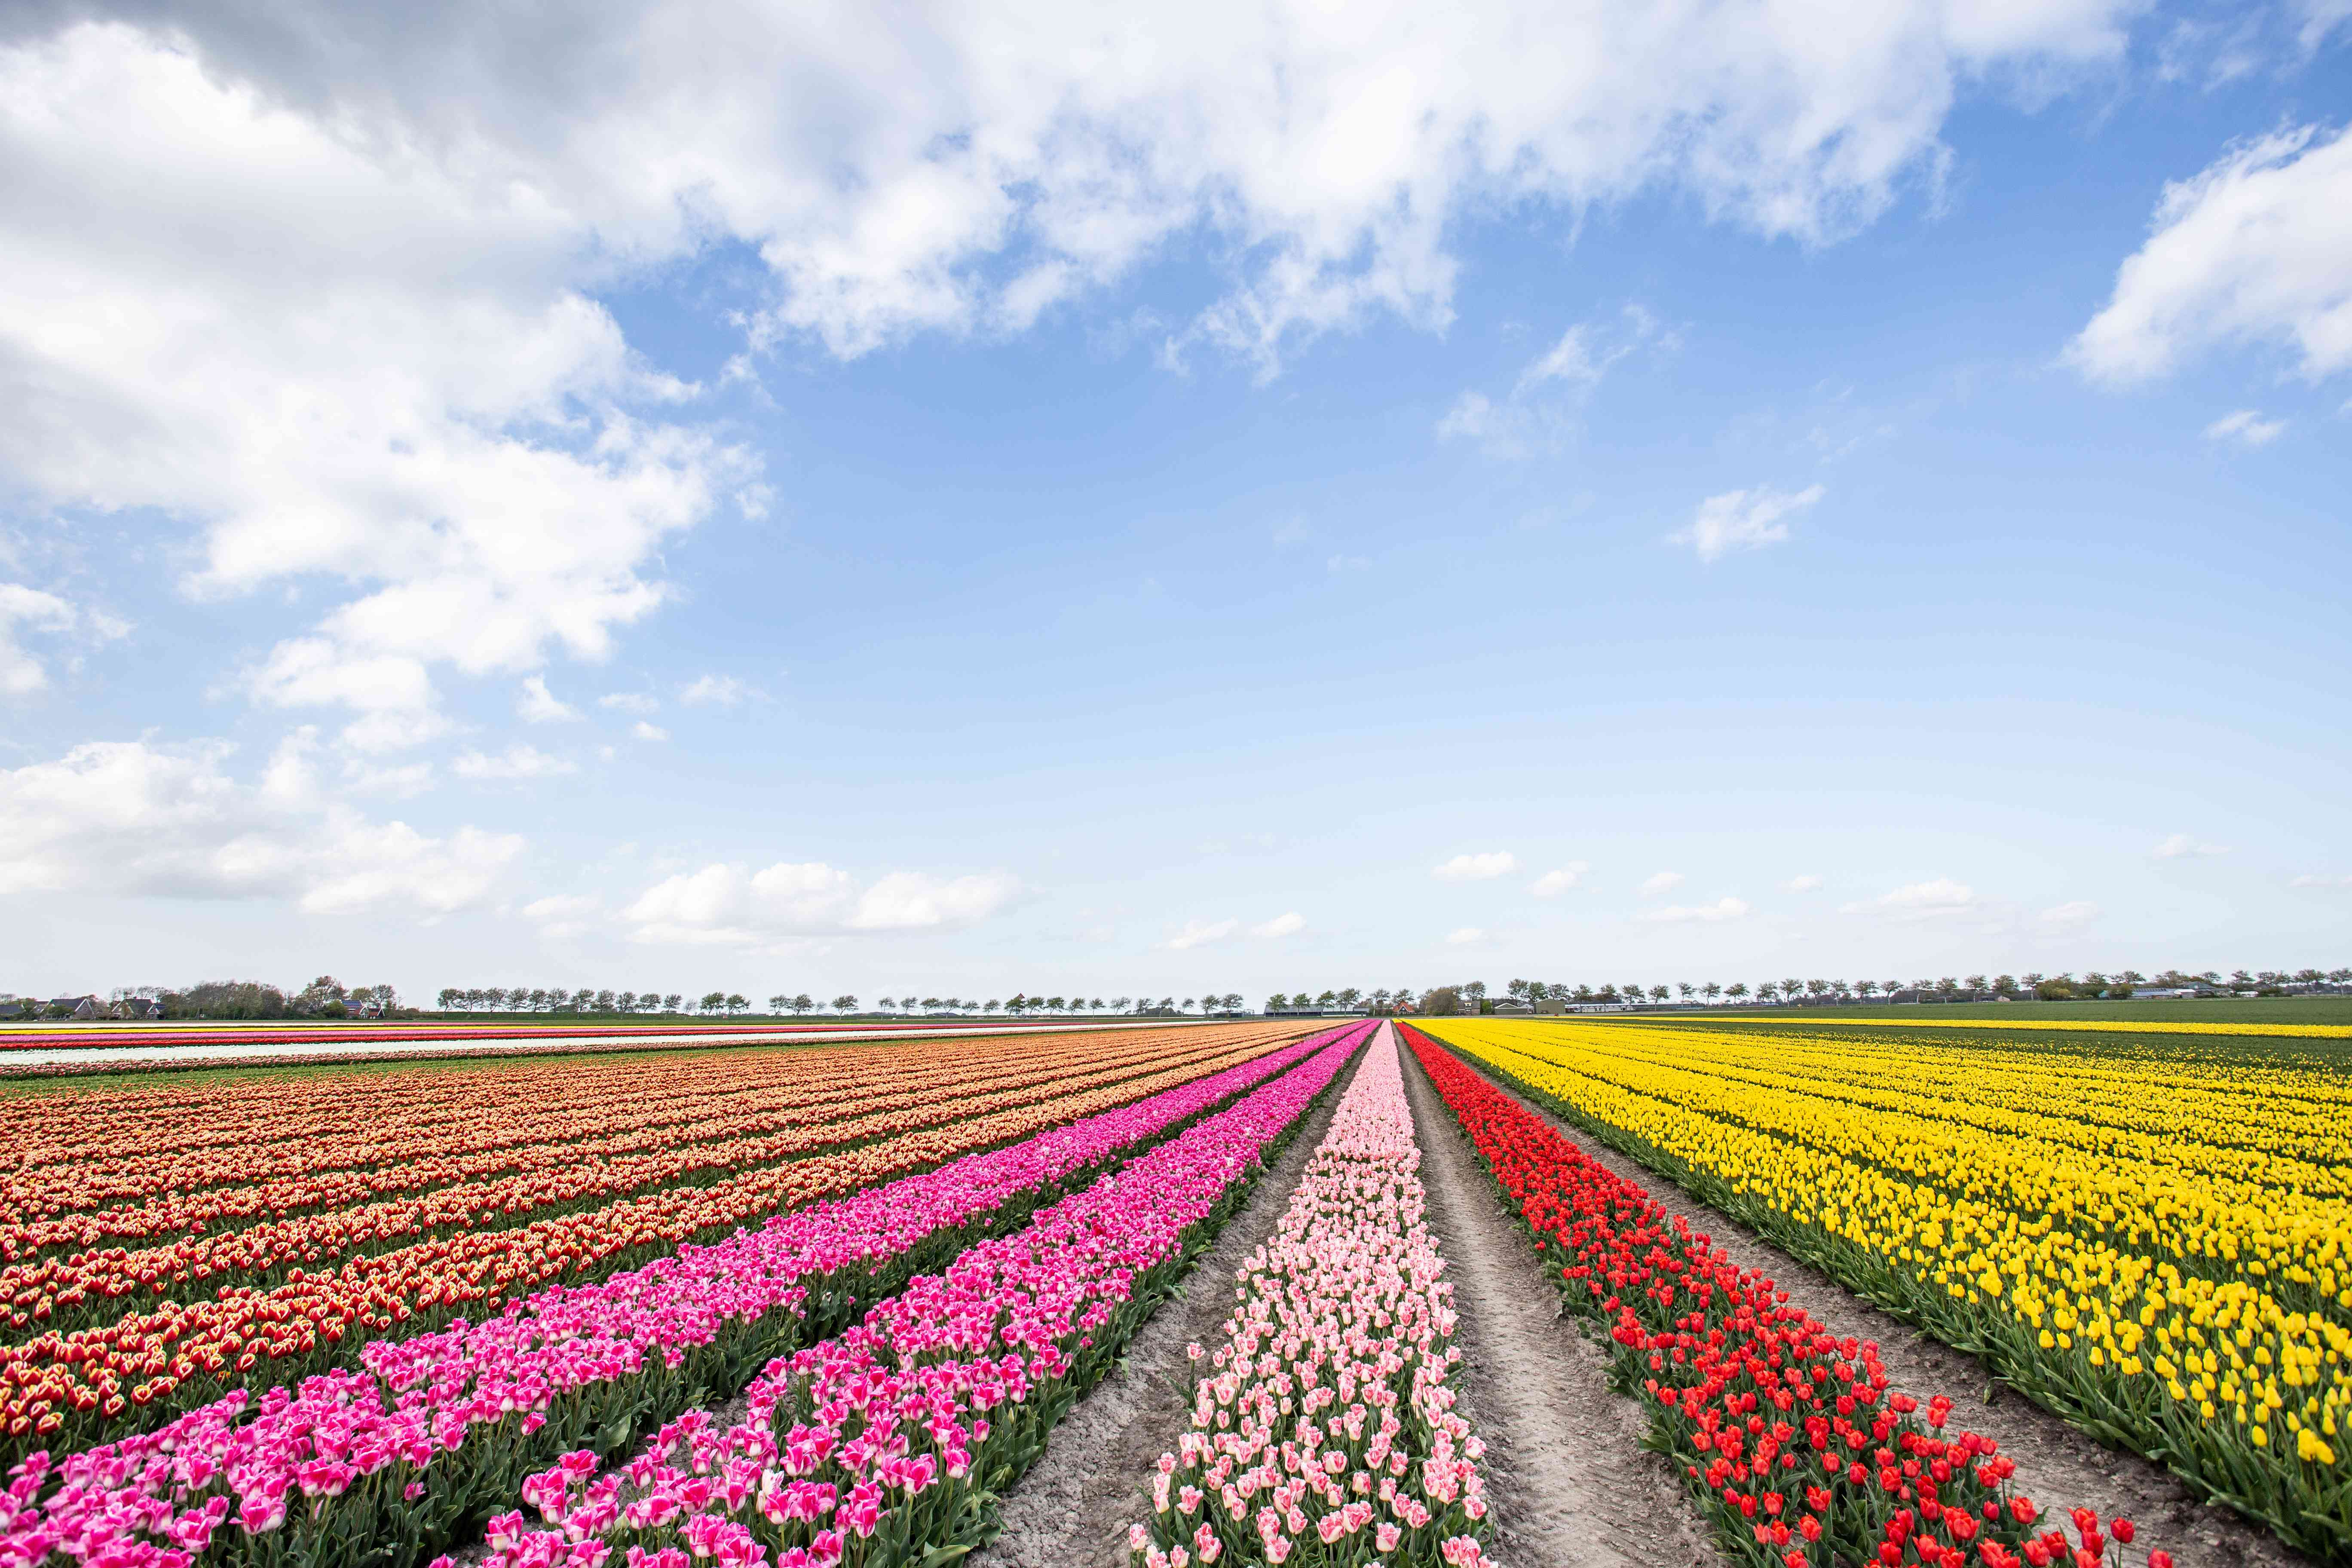 Rows of colorful tulips outside of Amsterdam